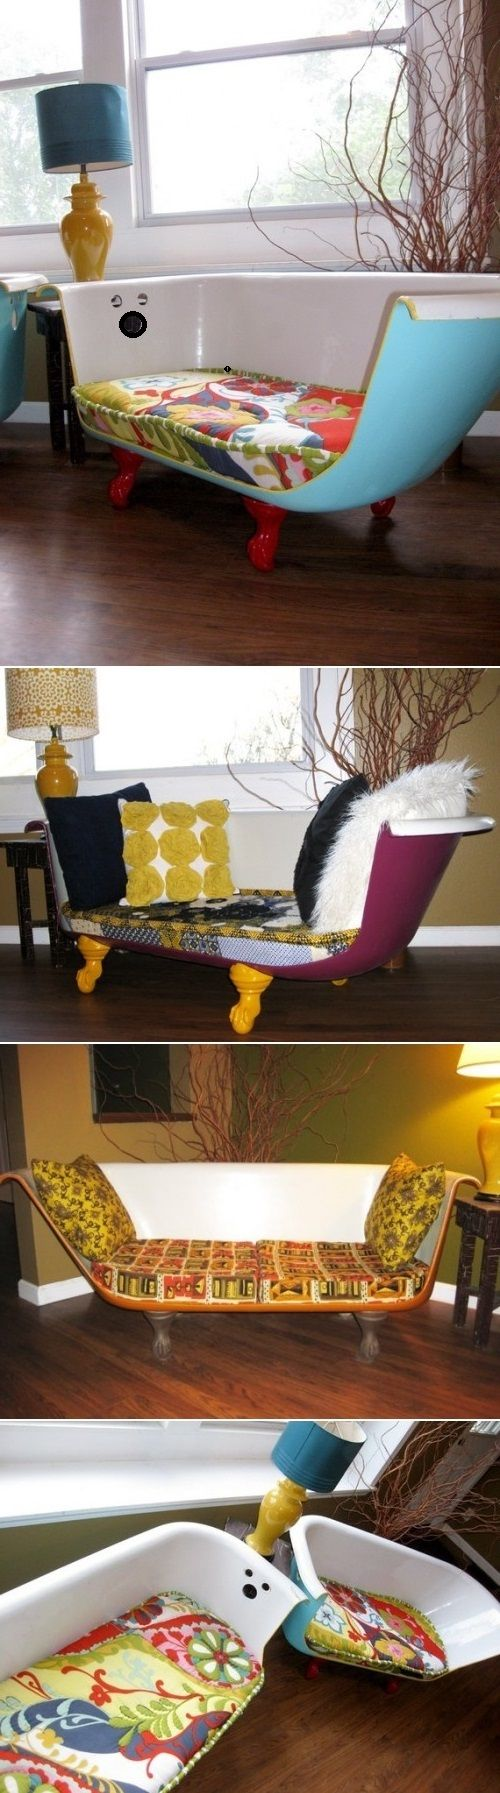 DIY Cast Iron Bathtub Couches! Yes! I wanted to do this ever since I saw it in Breakfast at Tiffany's!